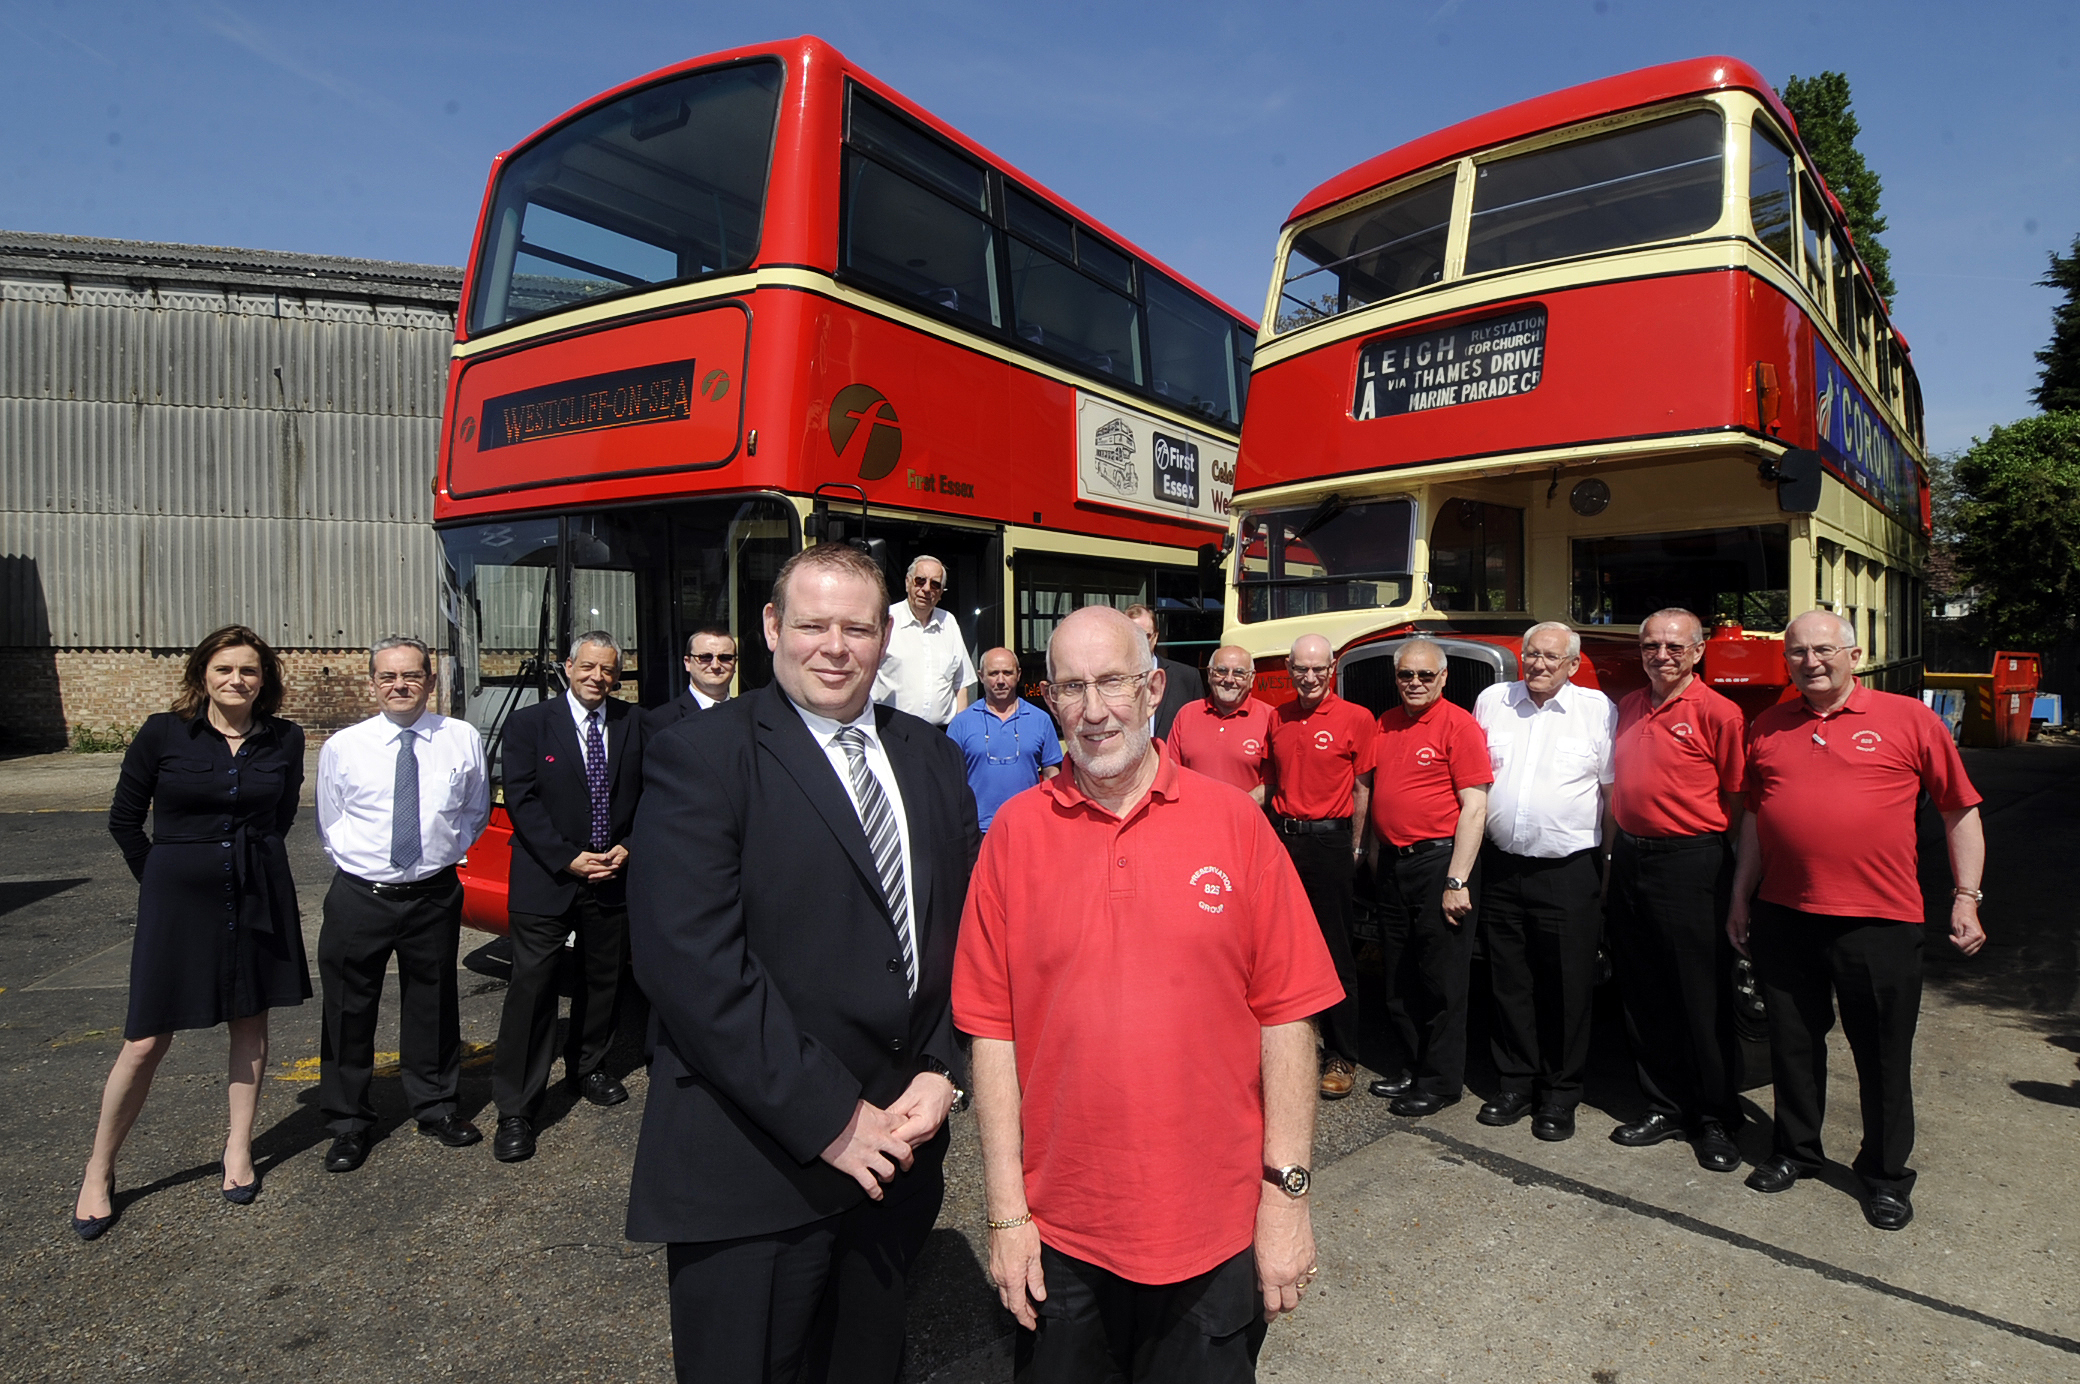 On the road – the refurbished double decker bus is in action